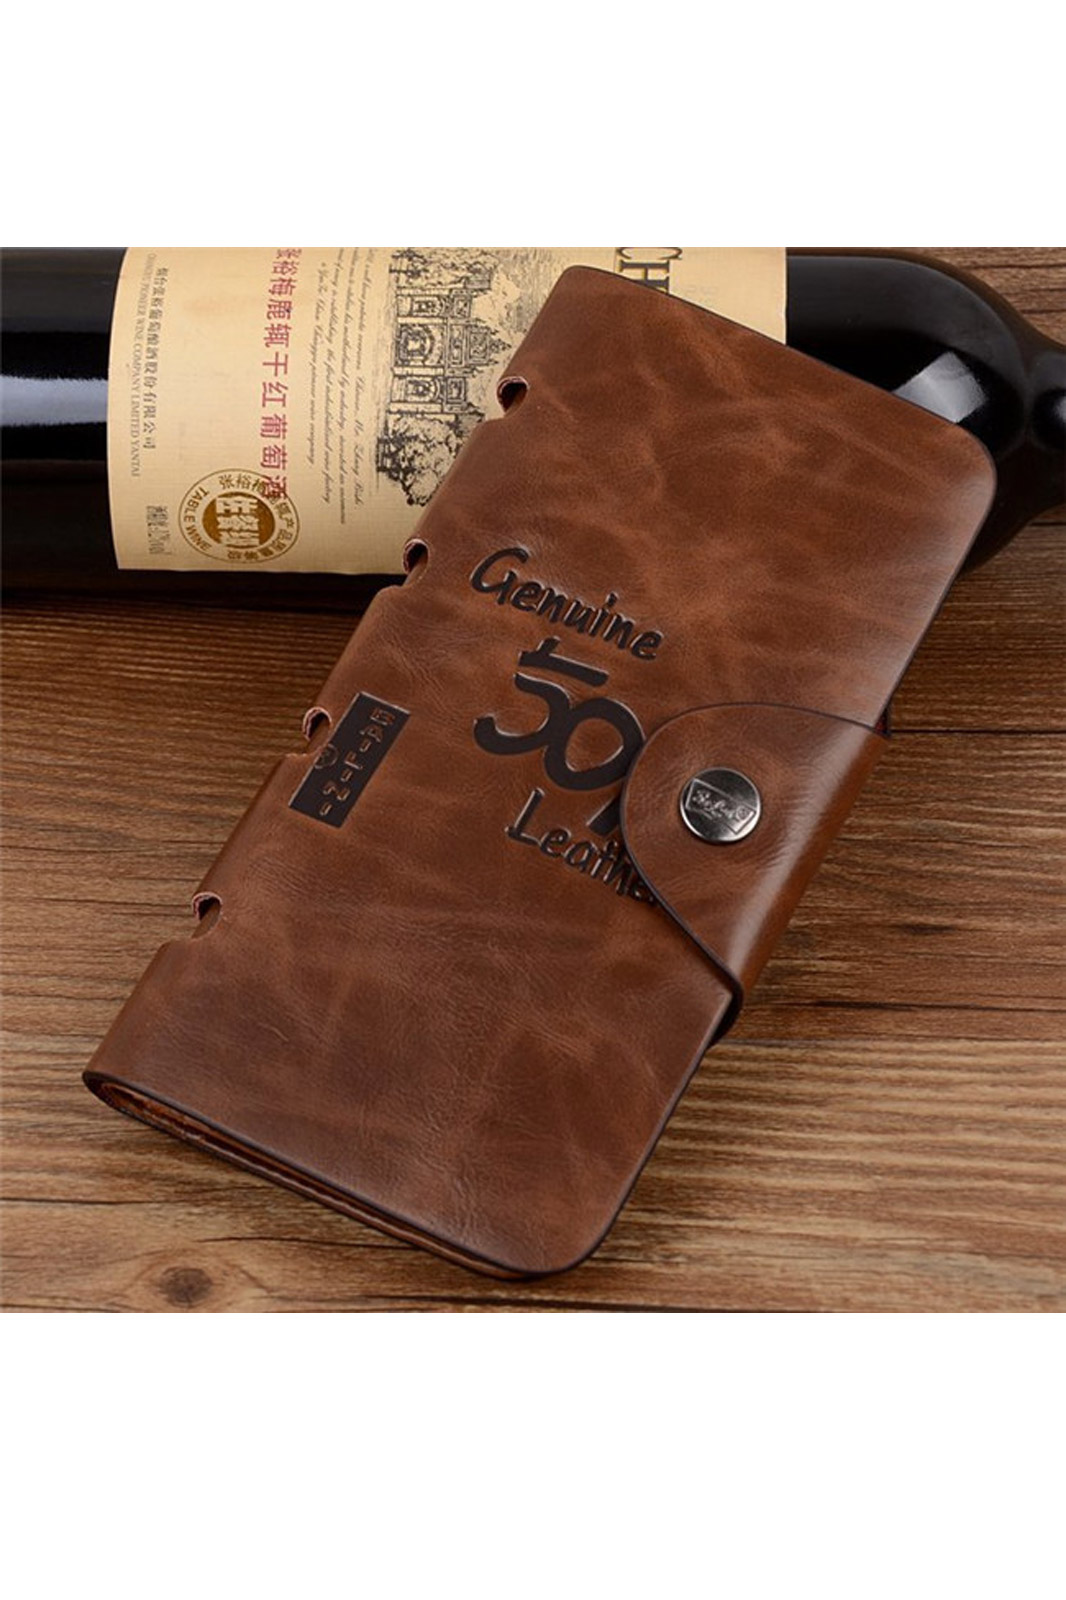 New fashion men long paragraph leather wallet vintage casual antique bifold wallets id card holder pocket purse bag gift